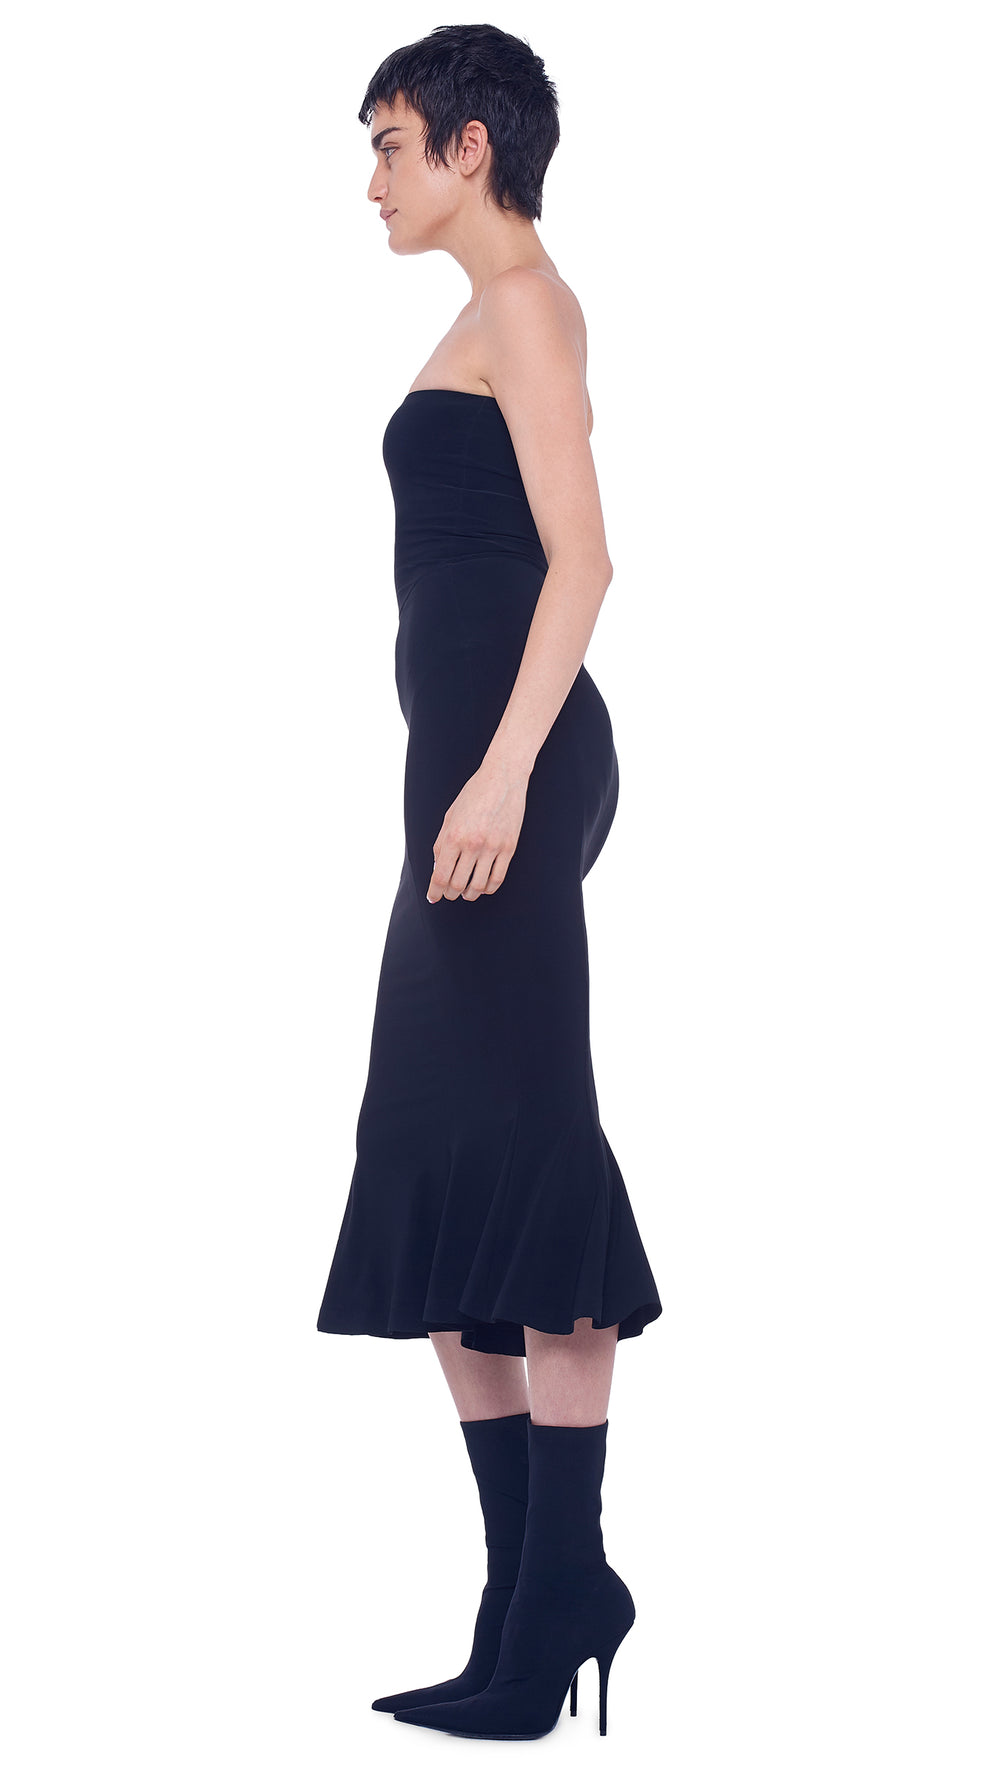 STRAPLESS FISHTAIL DRESS TO MIDCALF